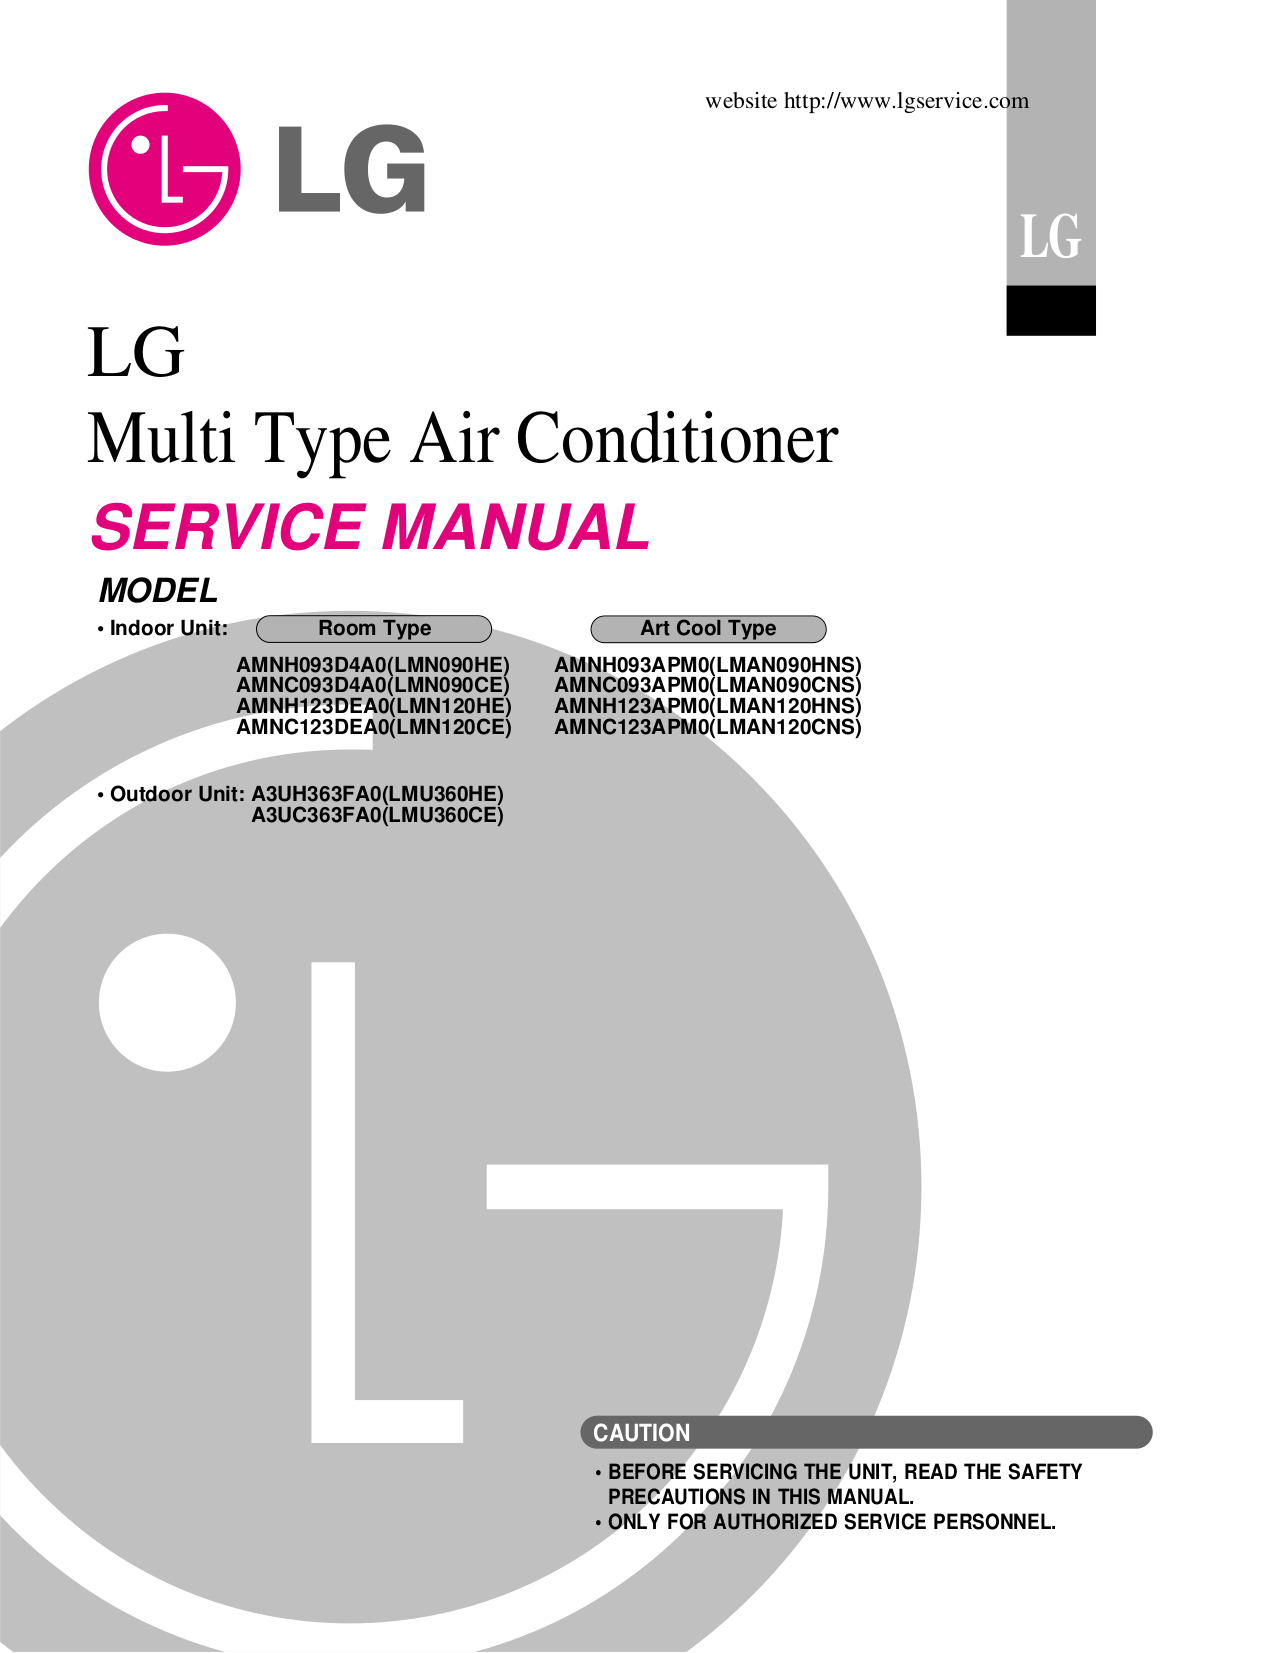 Lg aircon manual ebook array service manual lg pdf u2013 our ebook collection rh foolishphilosophy com fandeluxe Image collections